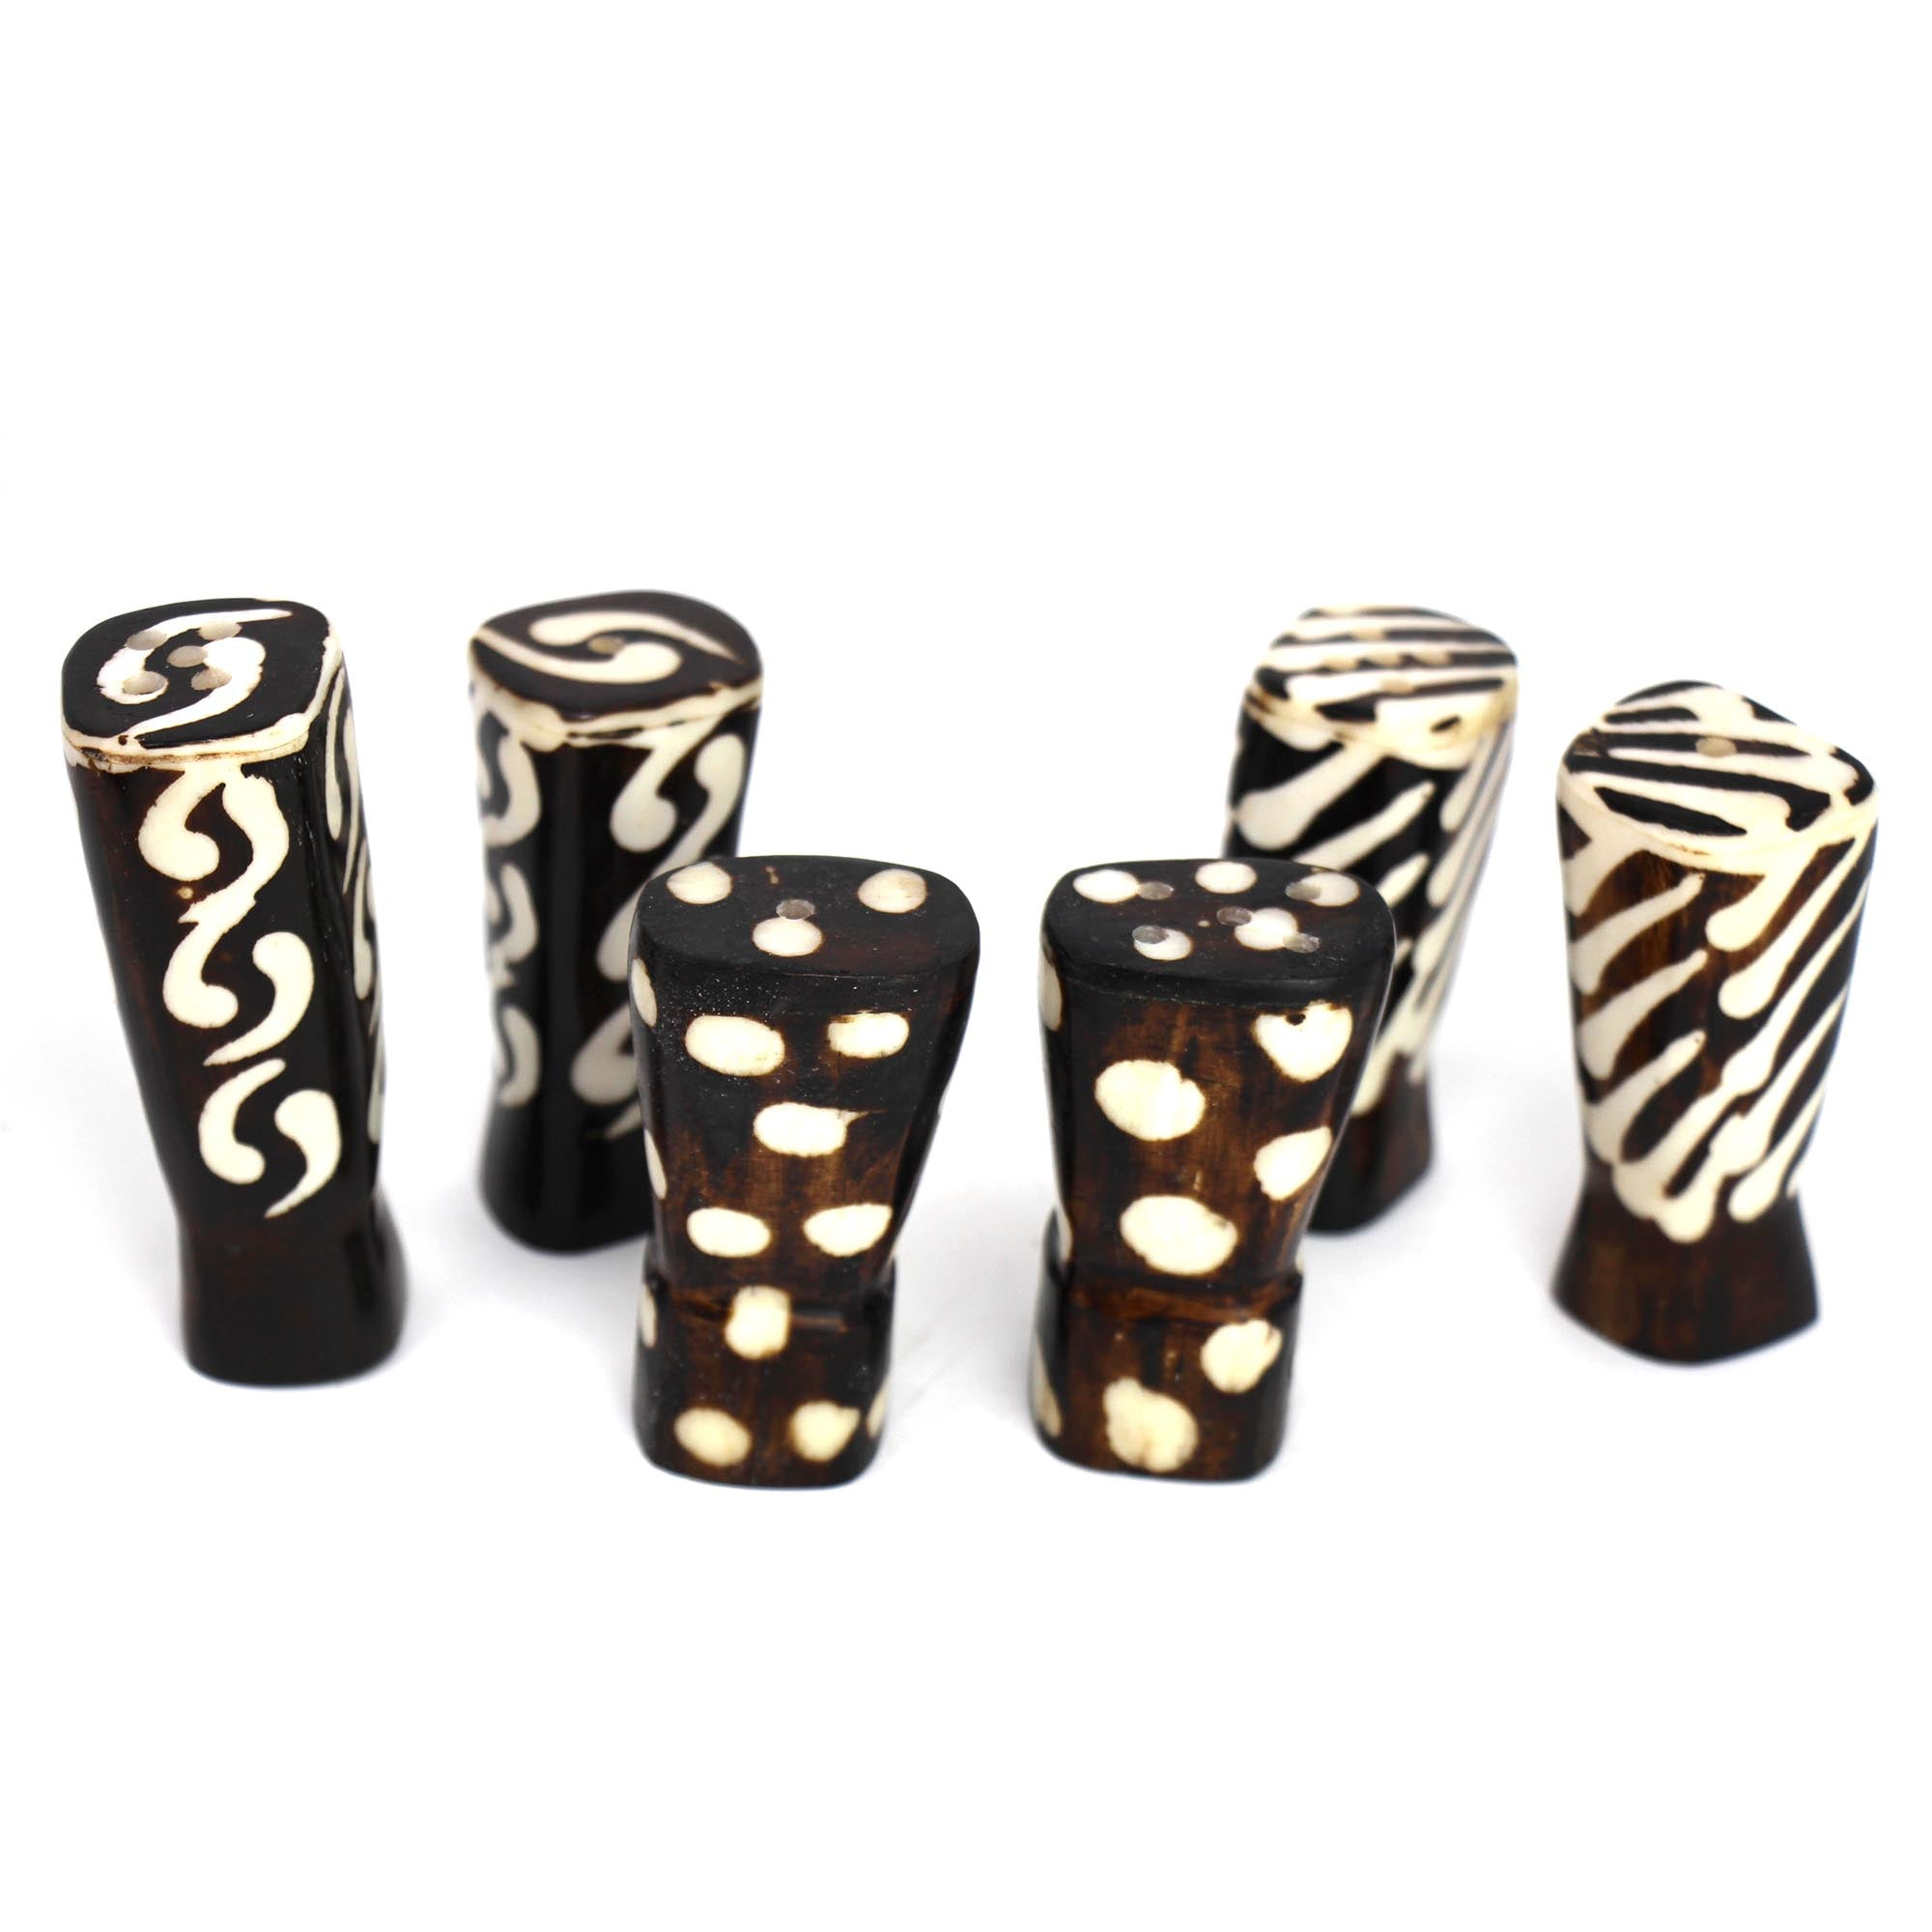 Batik Bone Salt & Pepper Shakers, Traditional Batik